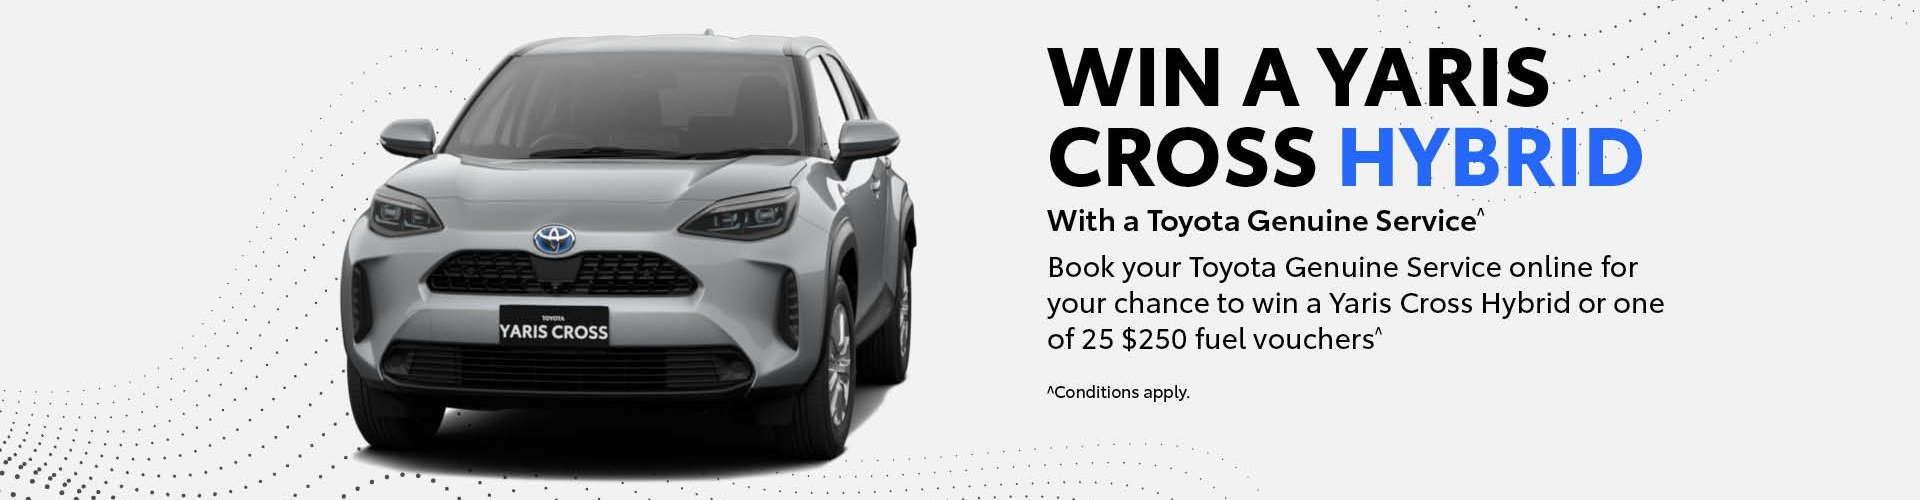 WIN A YARISCROSS HYBRID with a Toyota Genuine Service